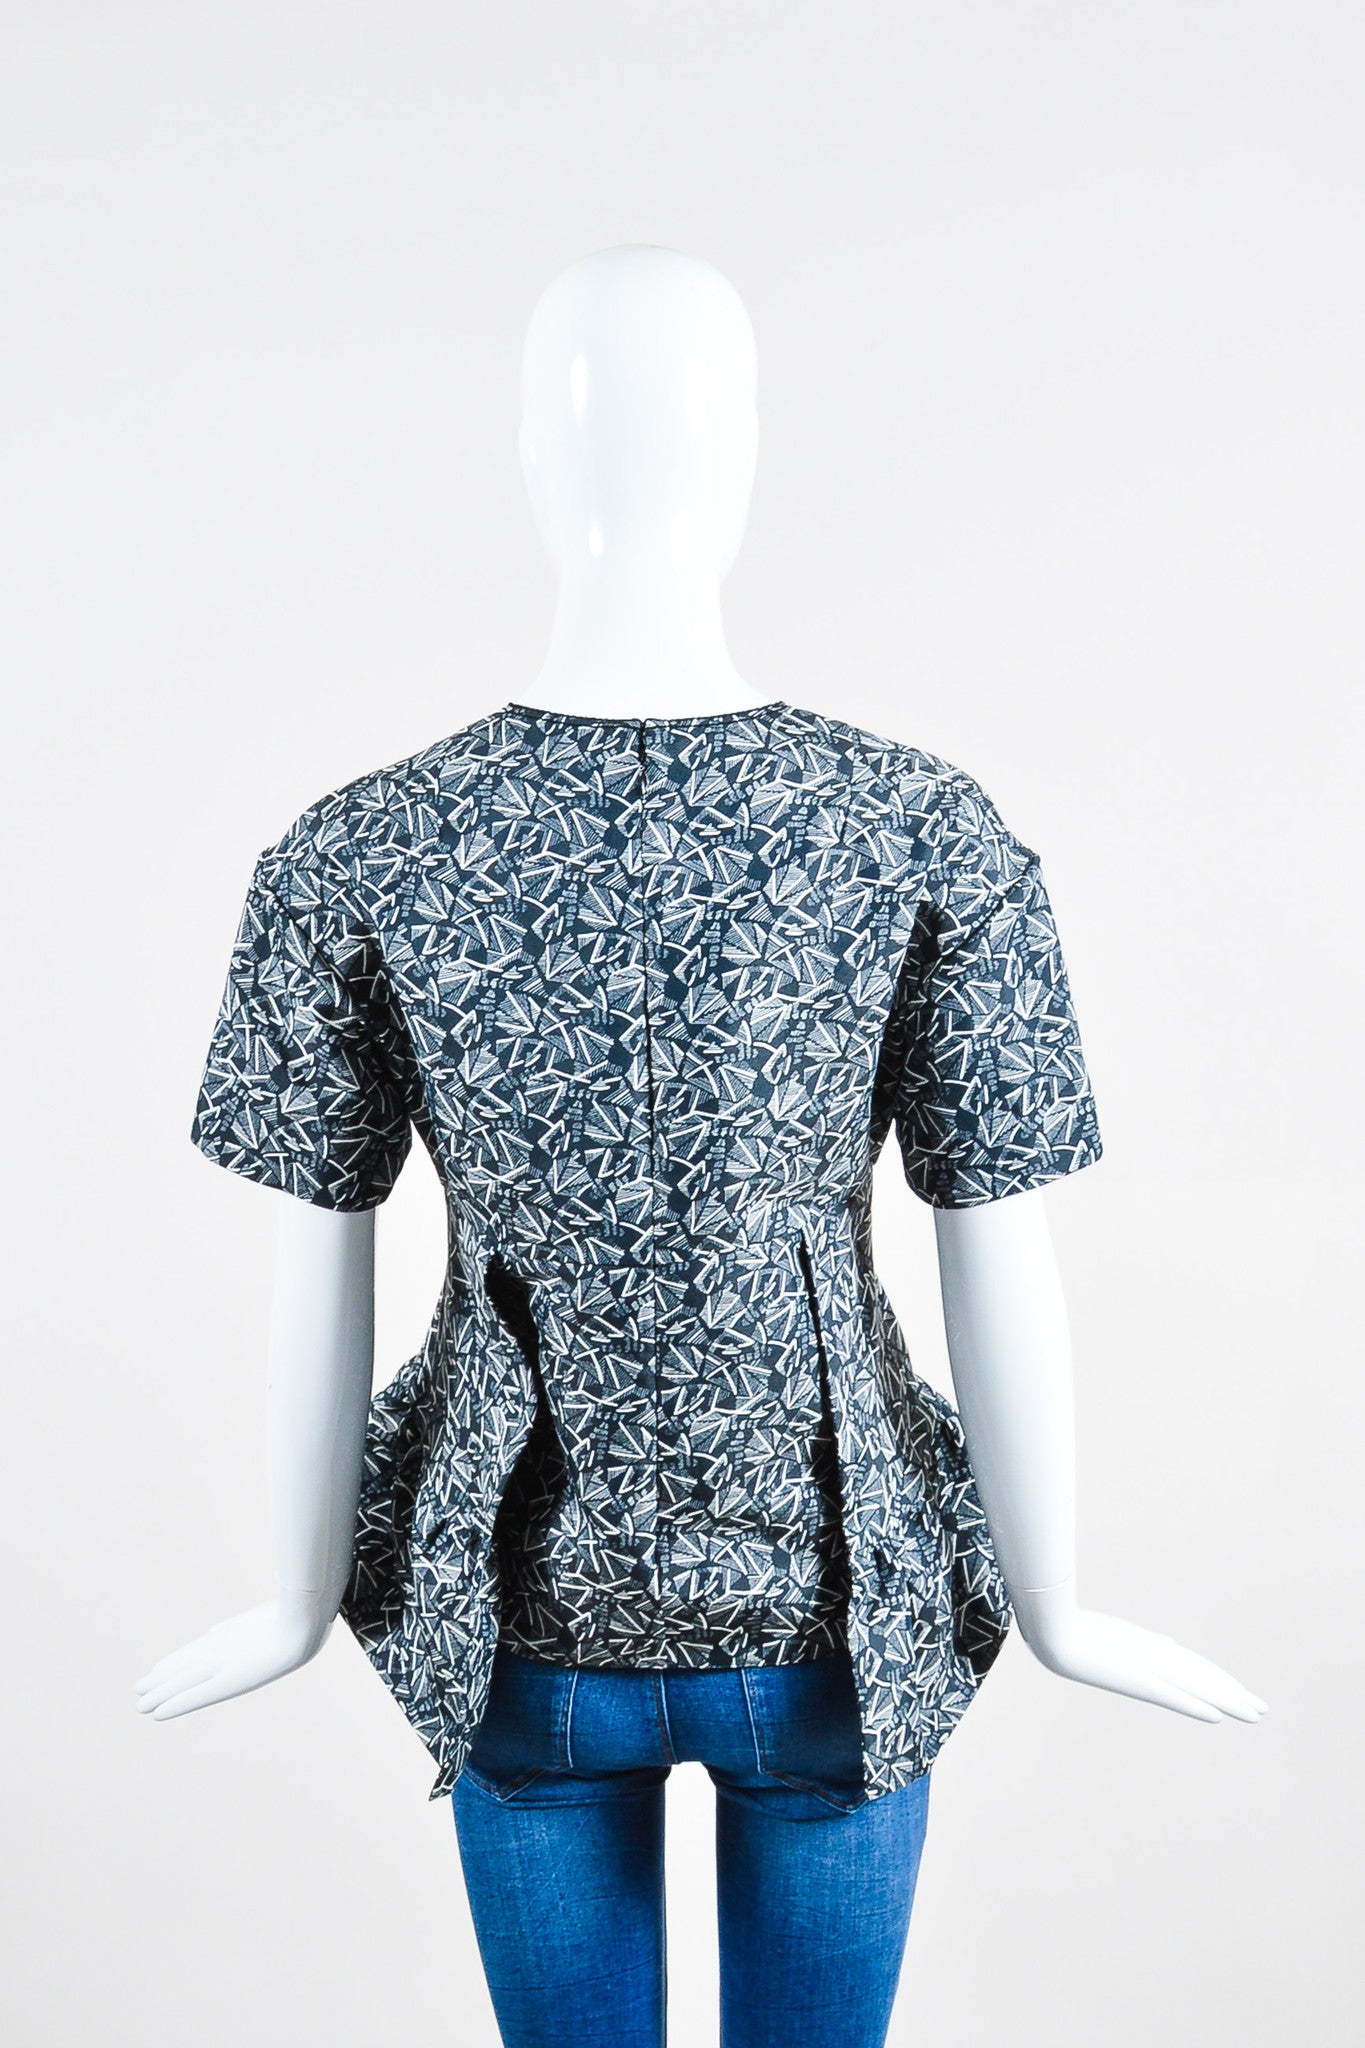 Blue-Grey and White Marni Geometric Print Pleated Short Sleeve Top Backview